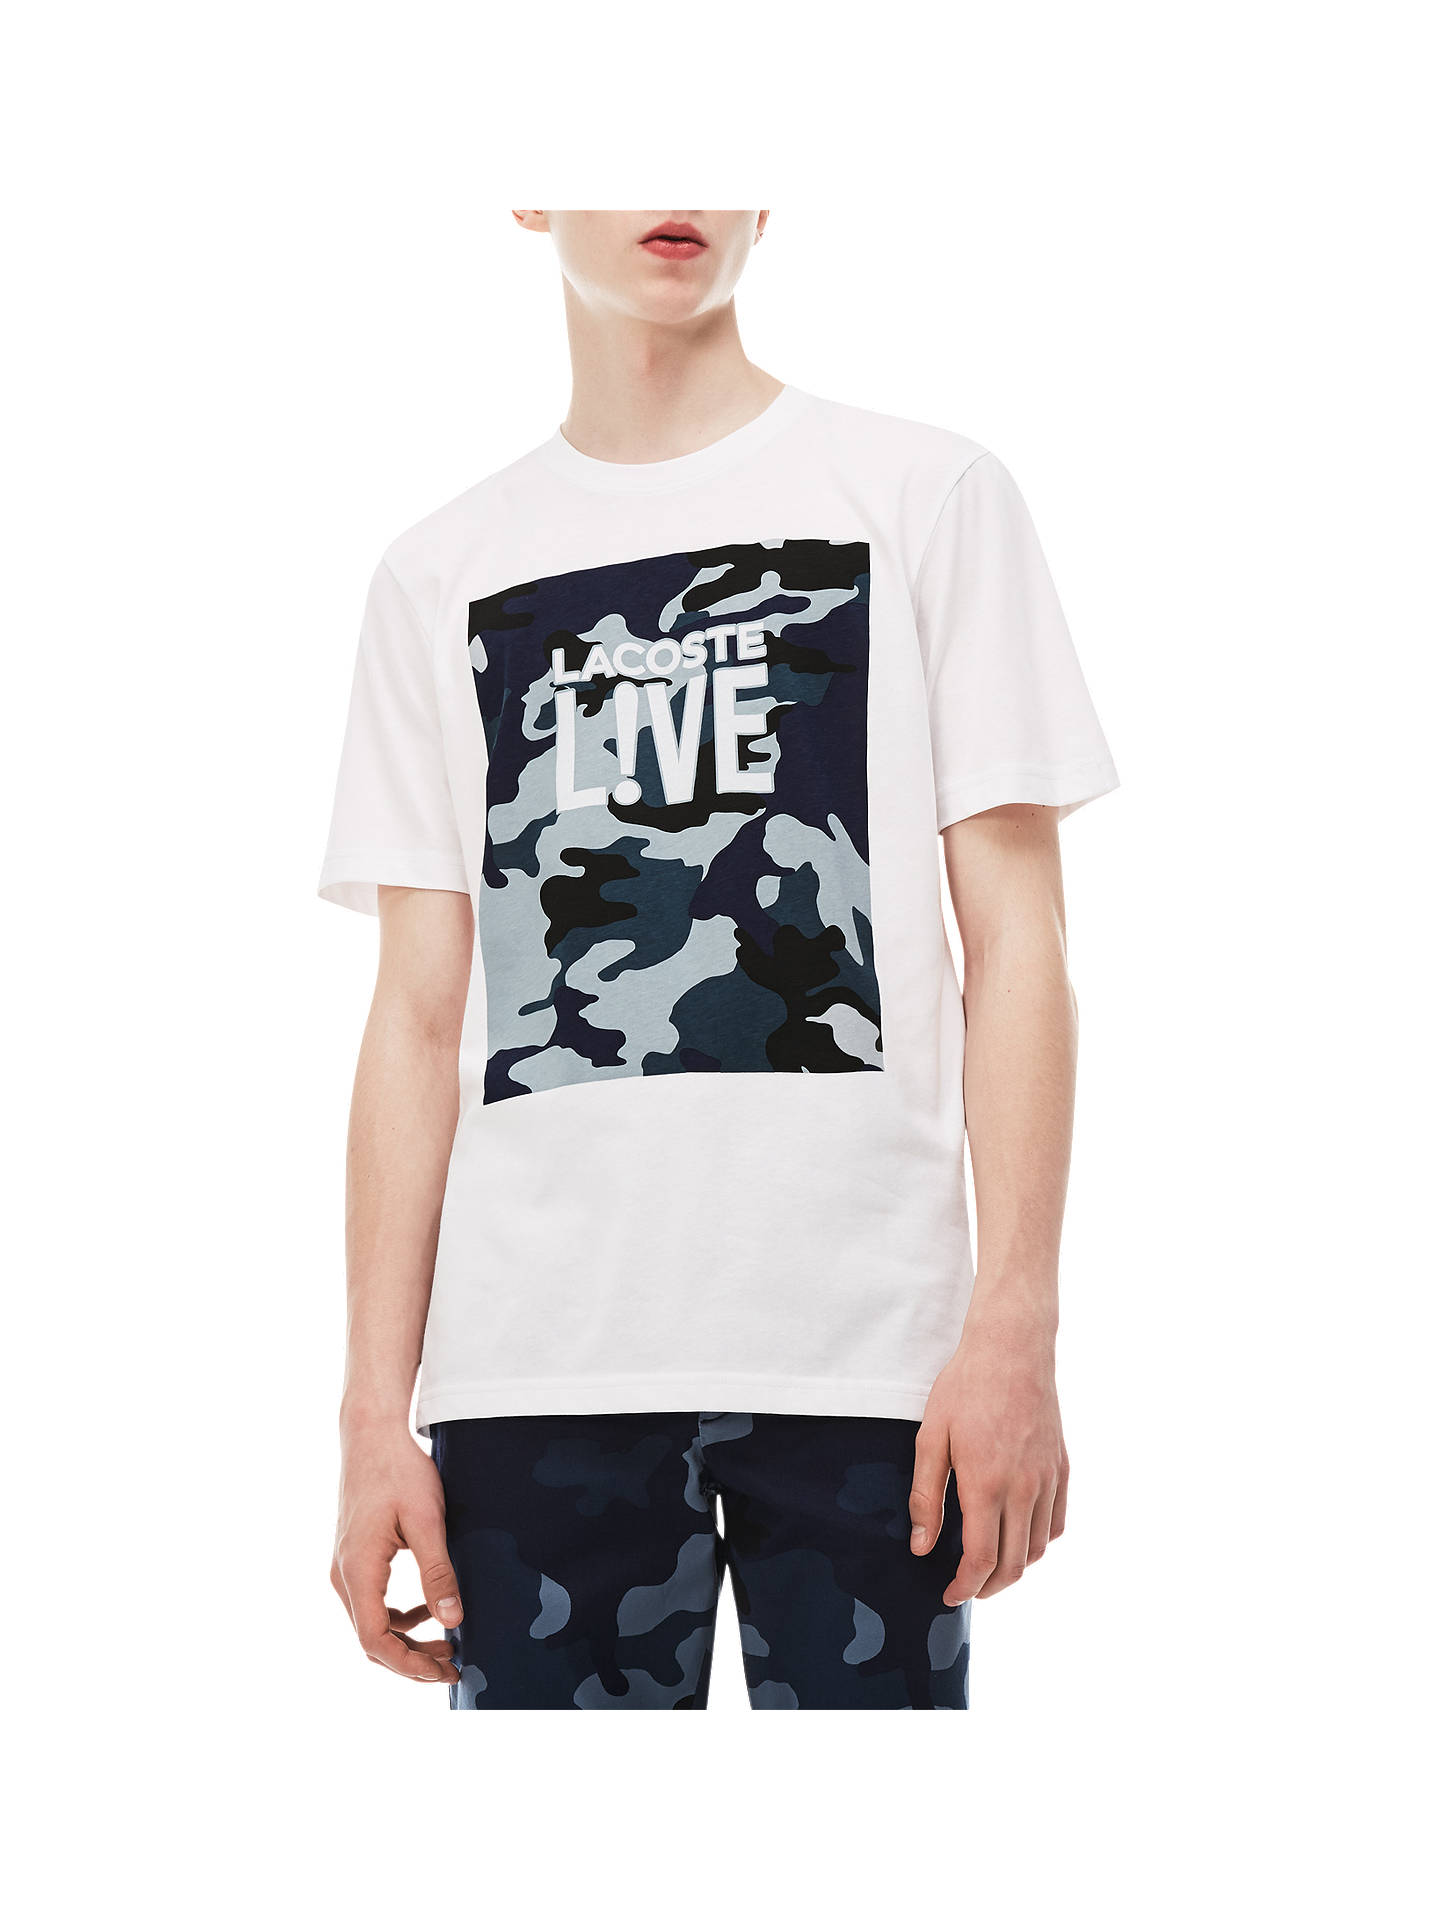 1a371eca1d Lacoste LIVE Camo Logo Graphic Print T-Shirt, White/Blue at John ...